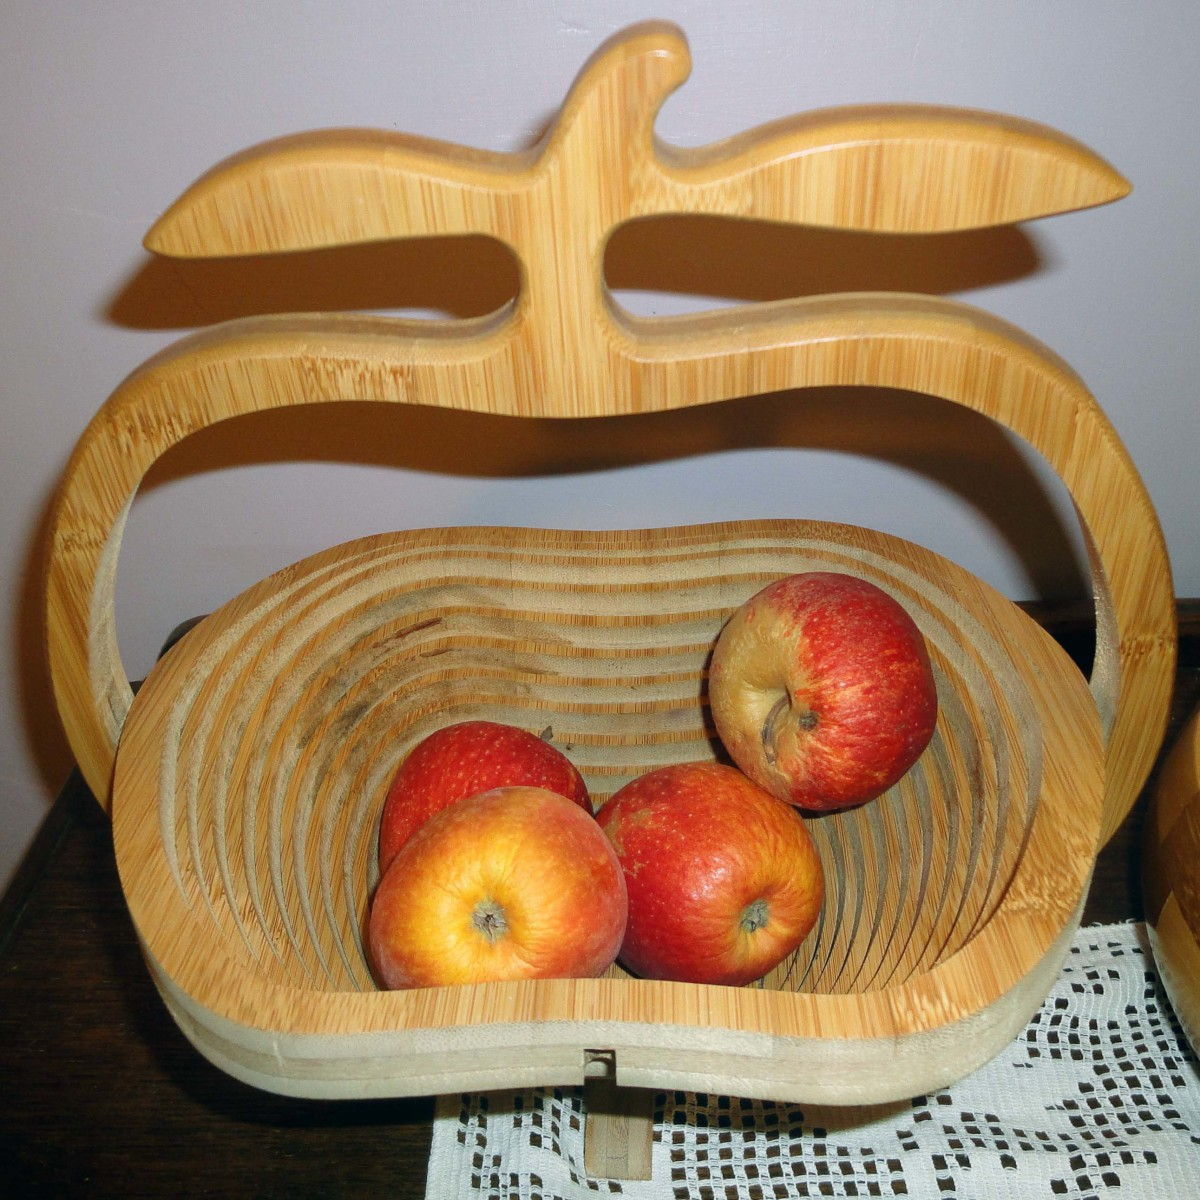 Carved handle and apples